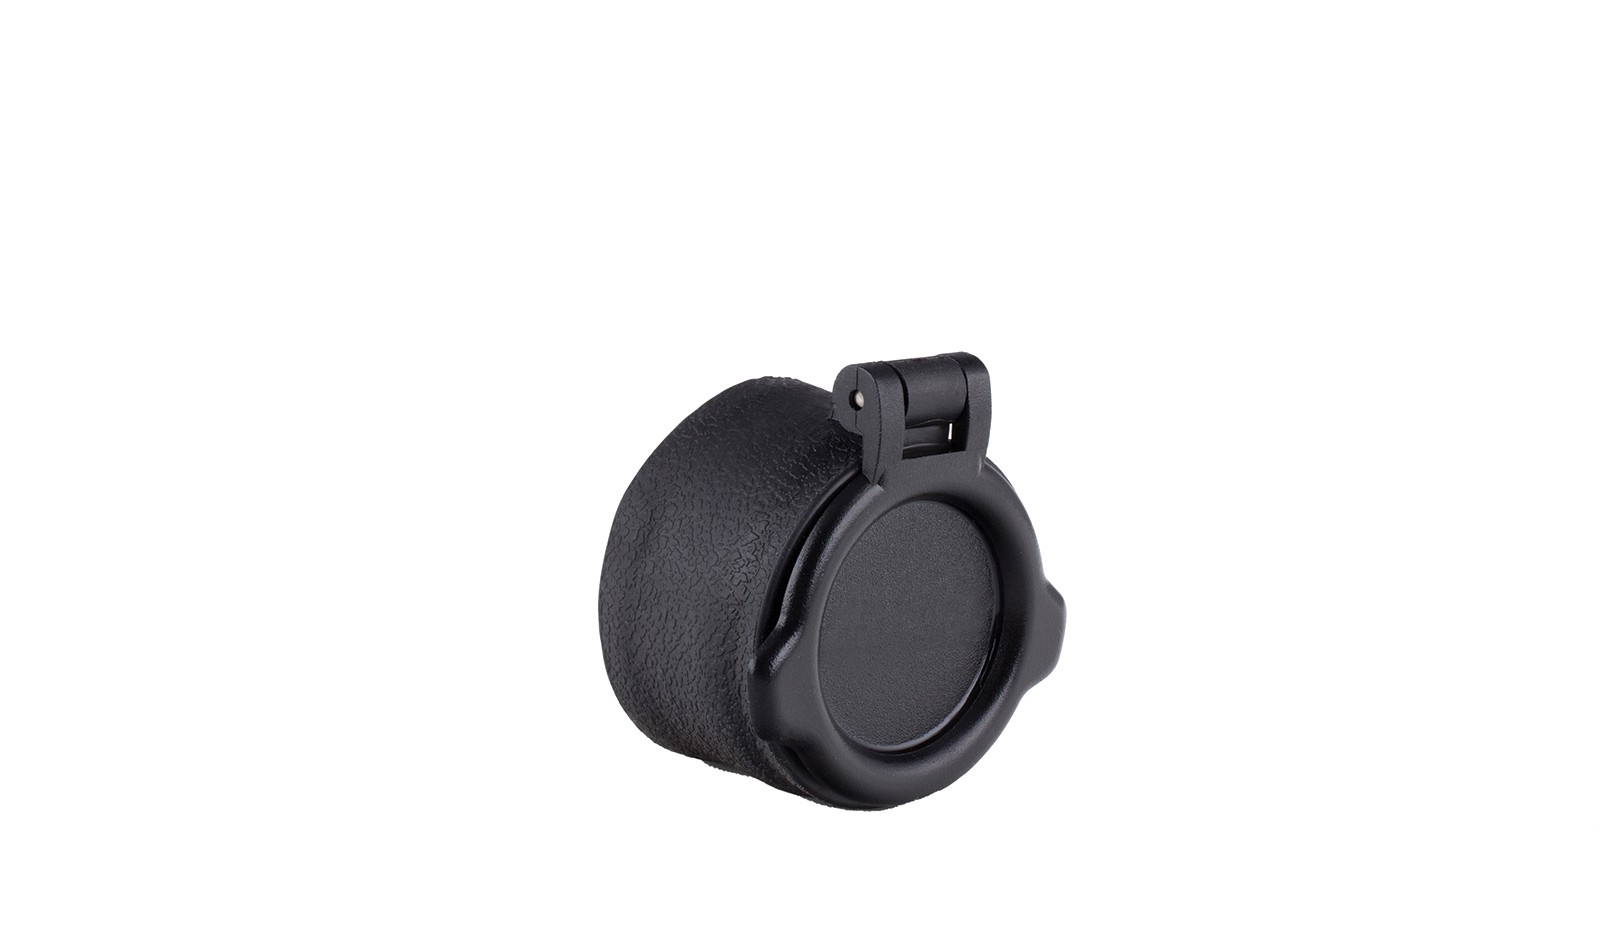 Trijicon<sup>®</sup> Objective Flip Cap for ACOG<sup>®</sup>4x32